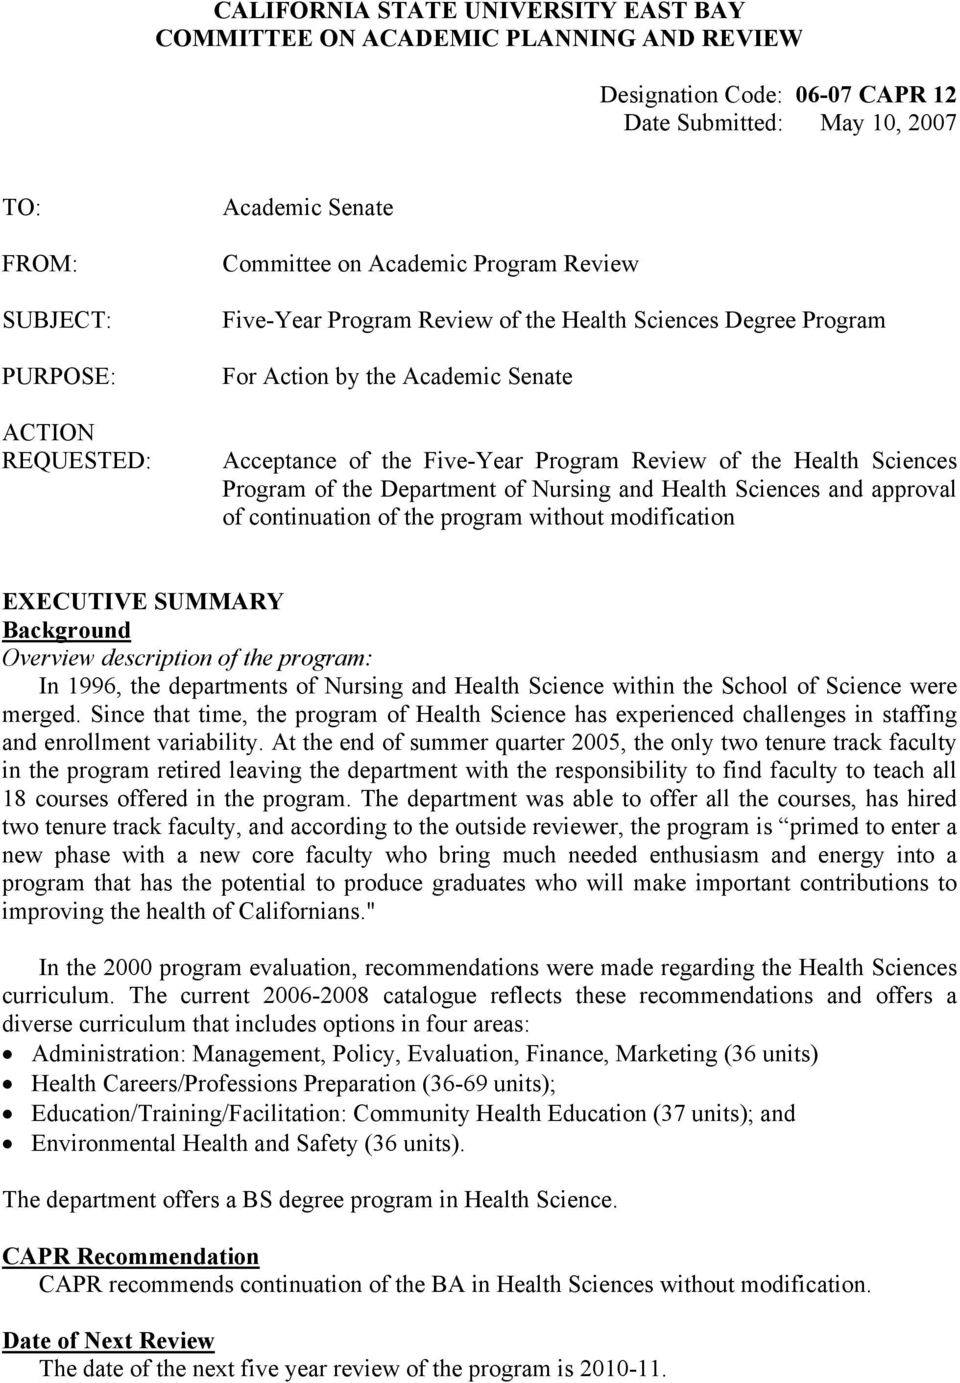 Sciences Program of the Department of Nursing and Health Sciences and approval of continuation of the program without modification EXECUTIVE SUMMARY Background Overview description of the program: In